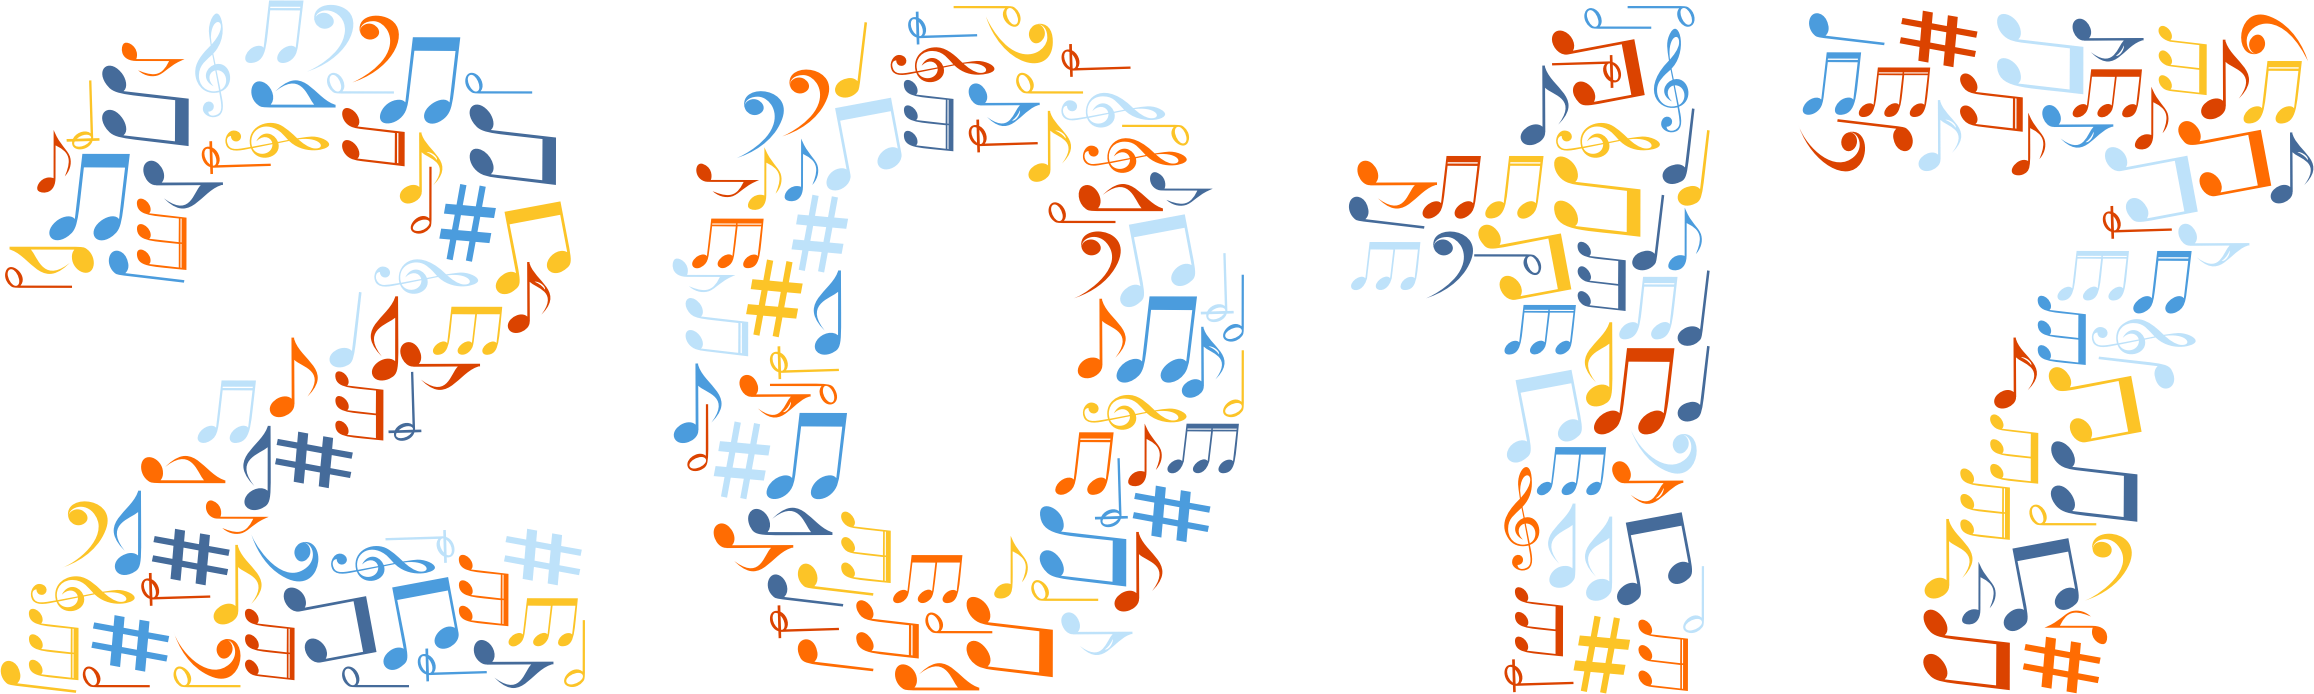 2017 Musical Notes Typography No Background by GDJ